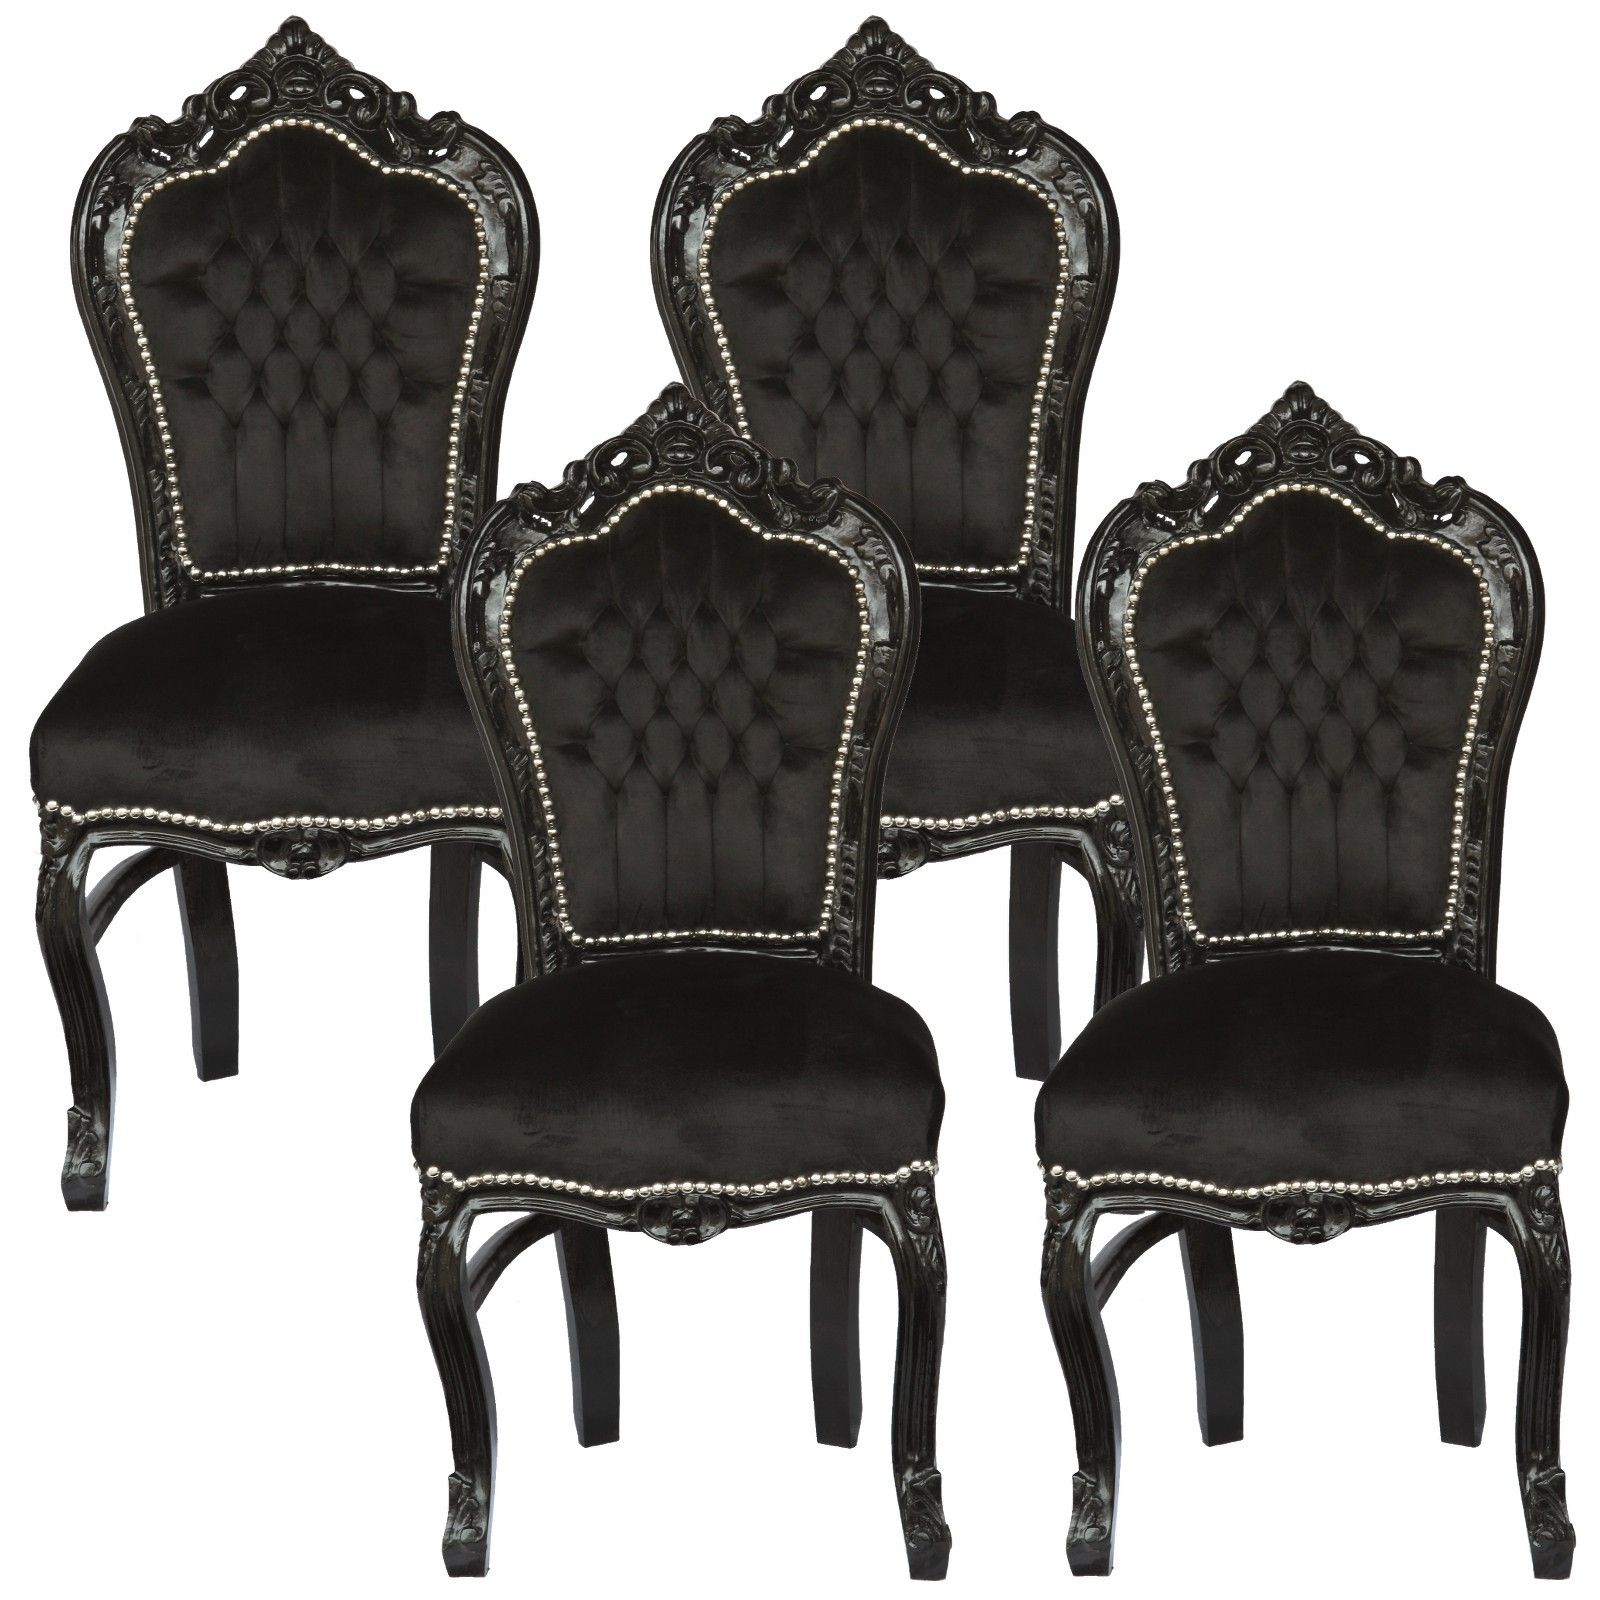 Black Velvet Chair Amazing Set Of 4 Dining Room Chairs Baroque Gothic Black